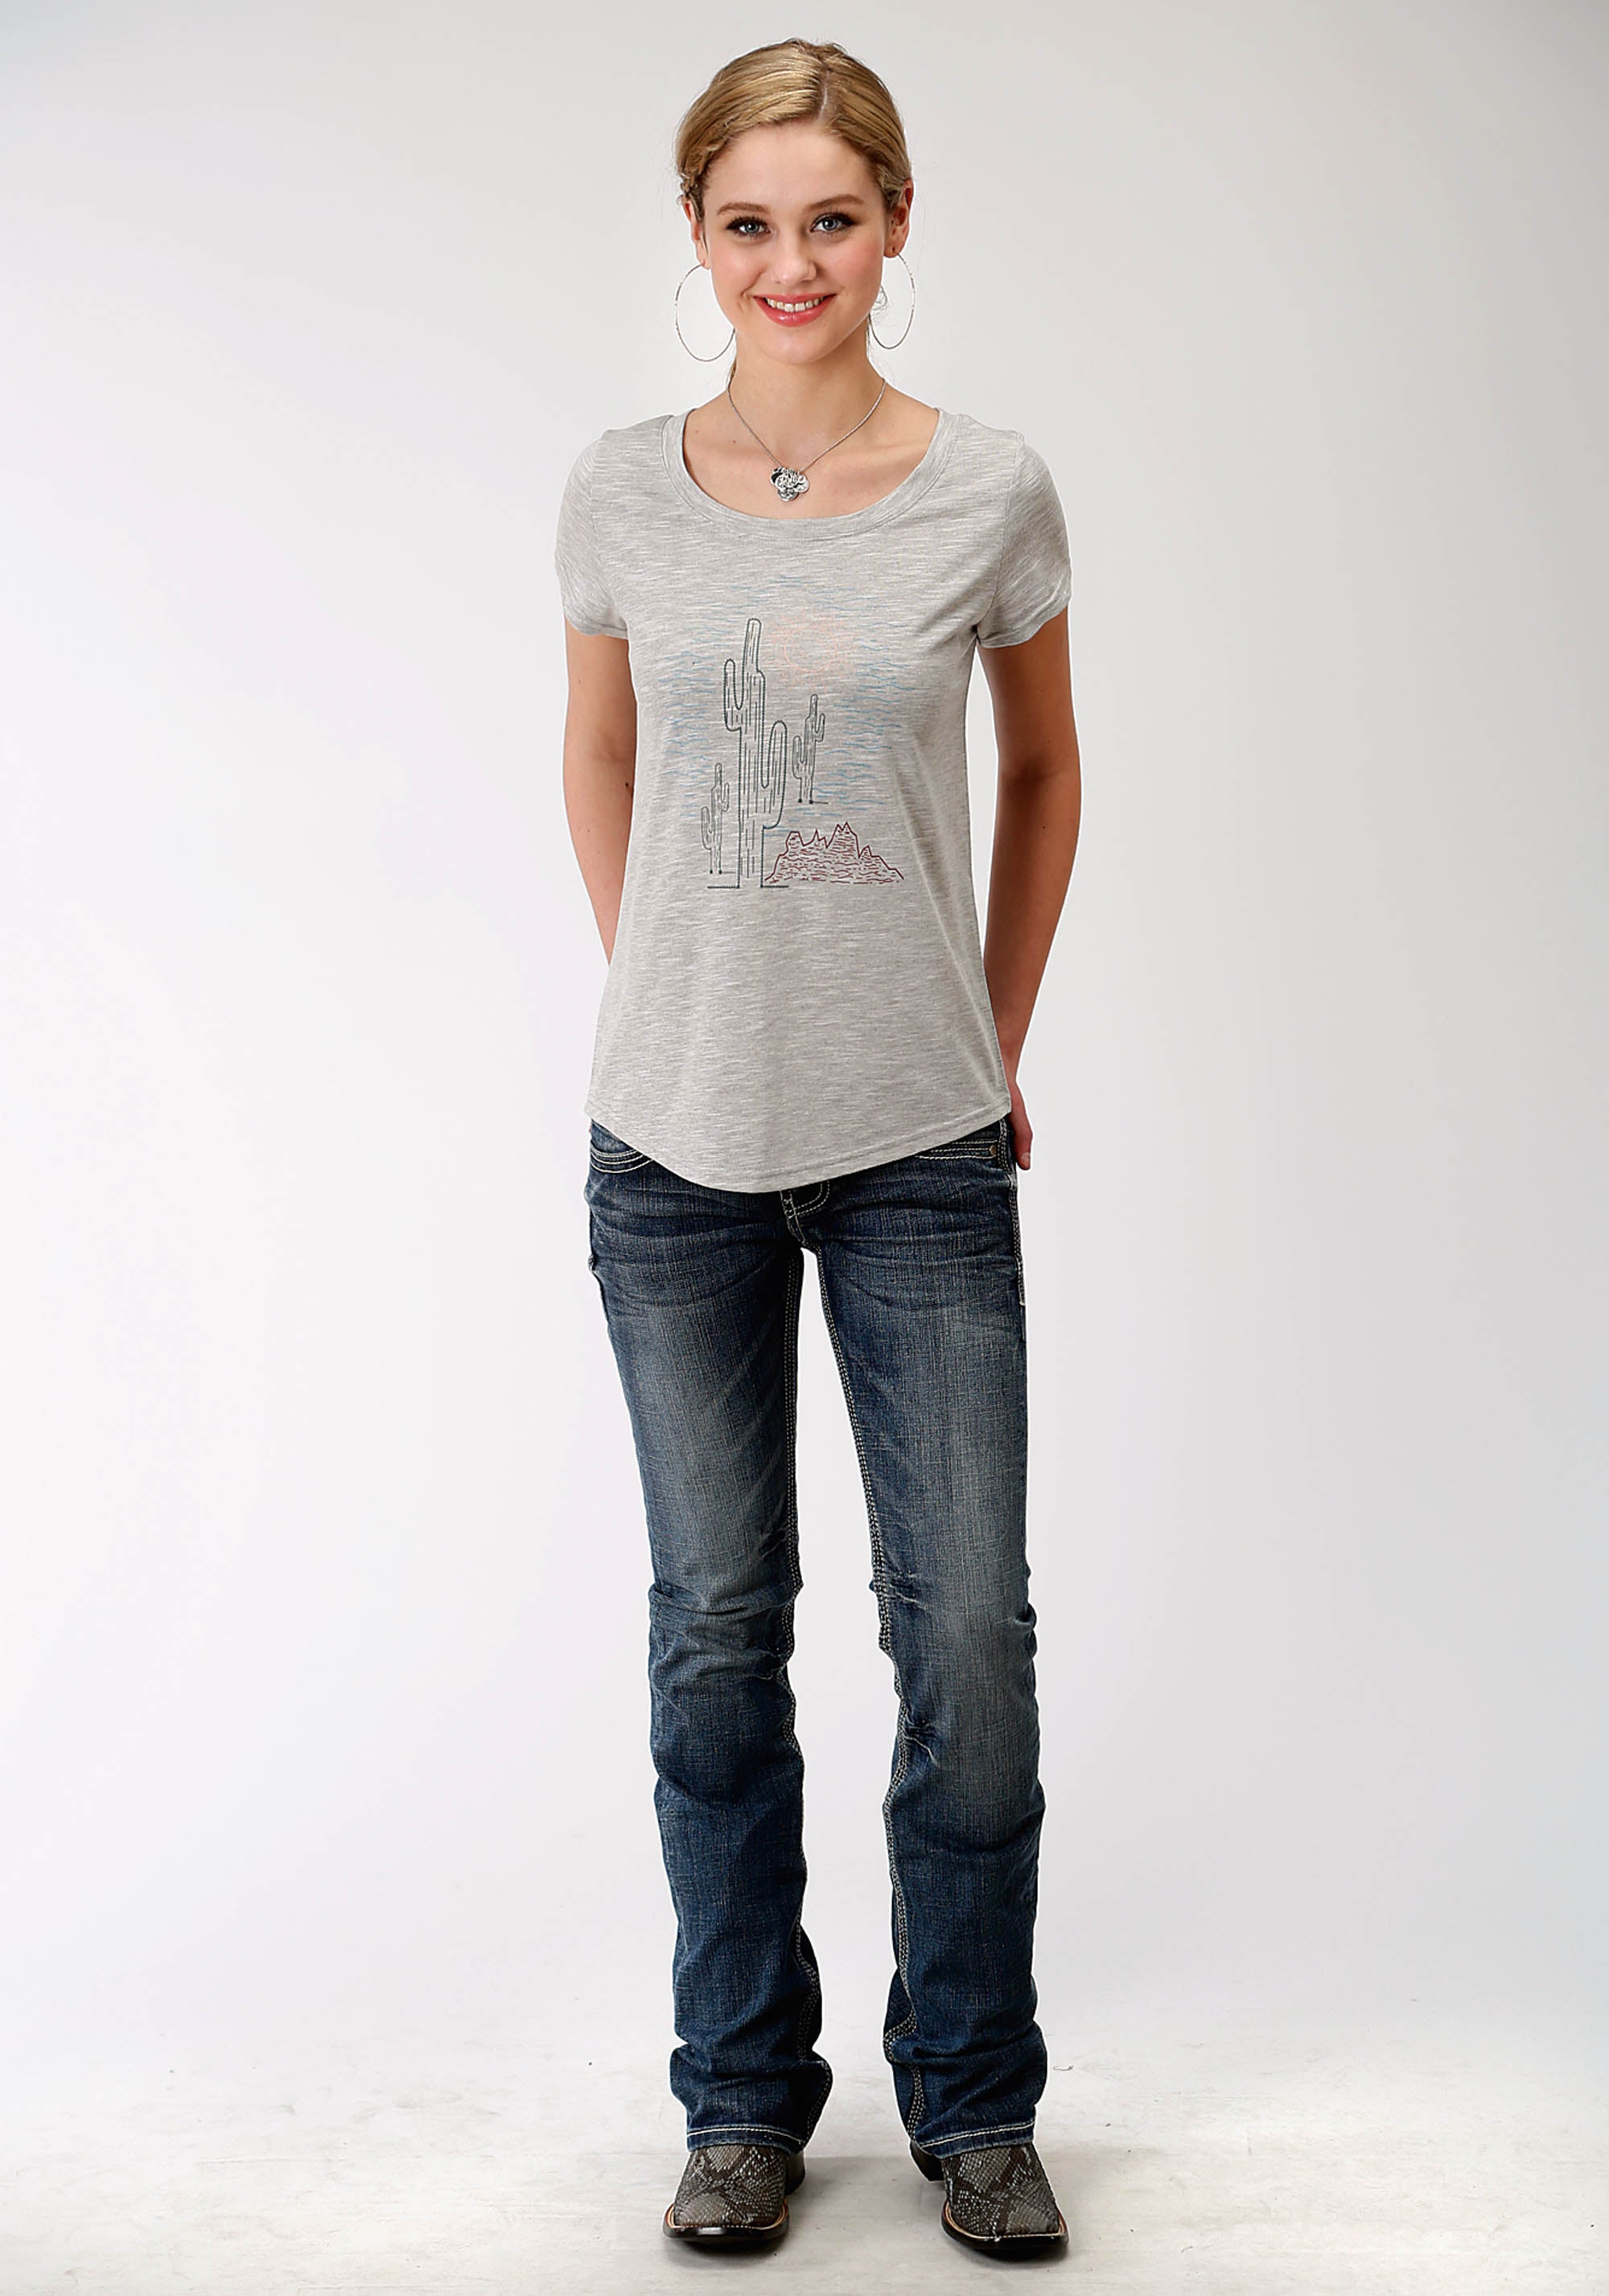 ROPER WOMENS GREY 0489 P/R LADIES SS CREW NECK TEE FIVE STAR COLLECTION- FALL II SHORT SLEEVE